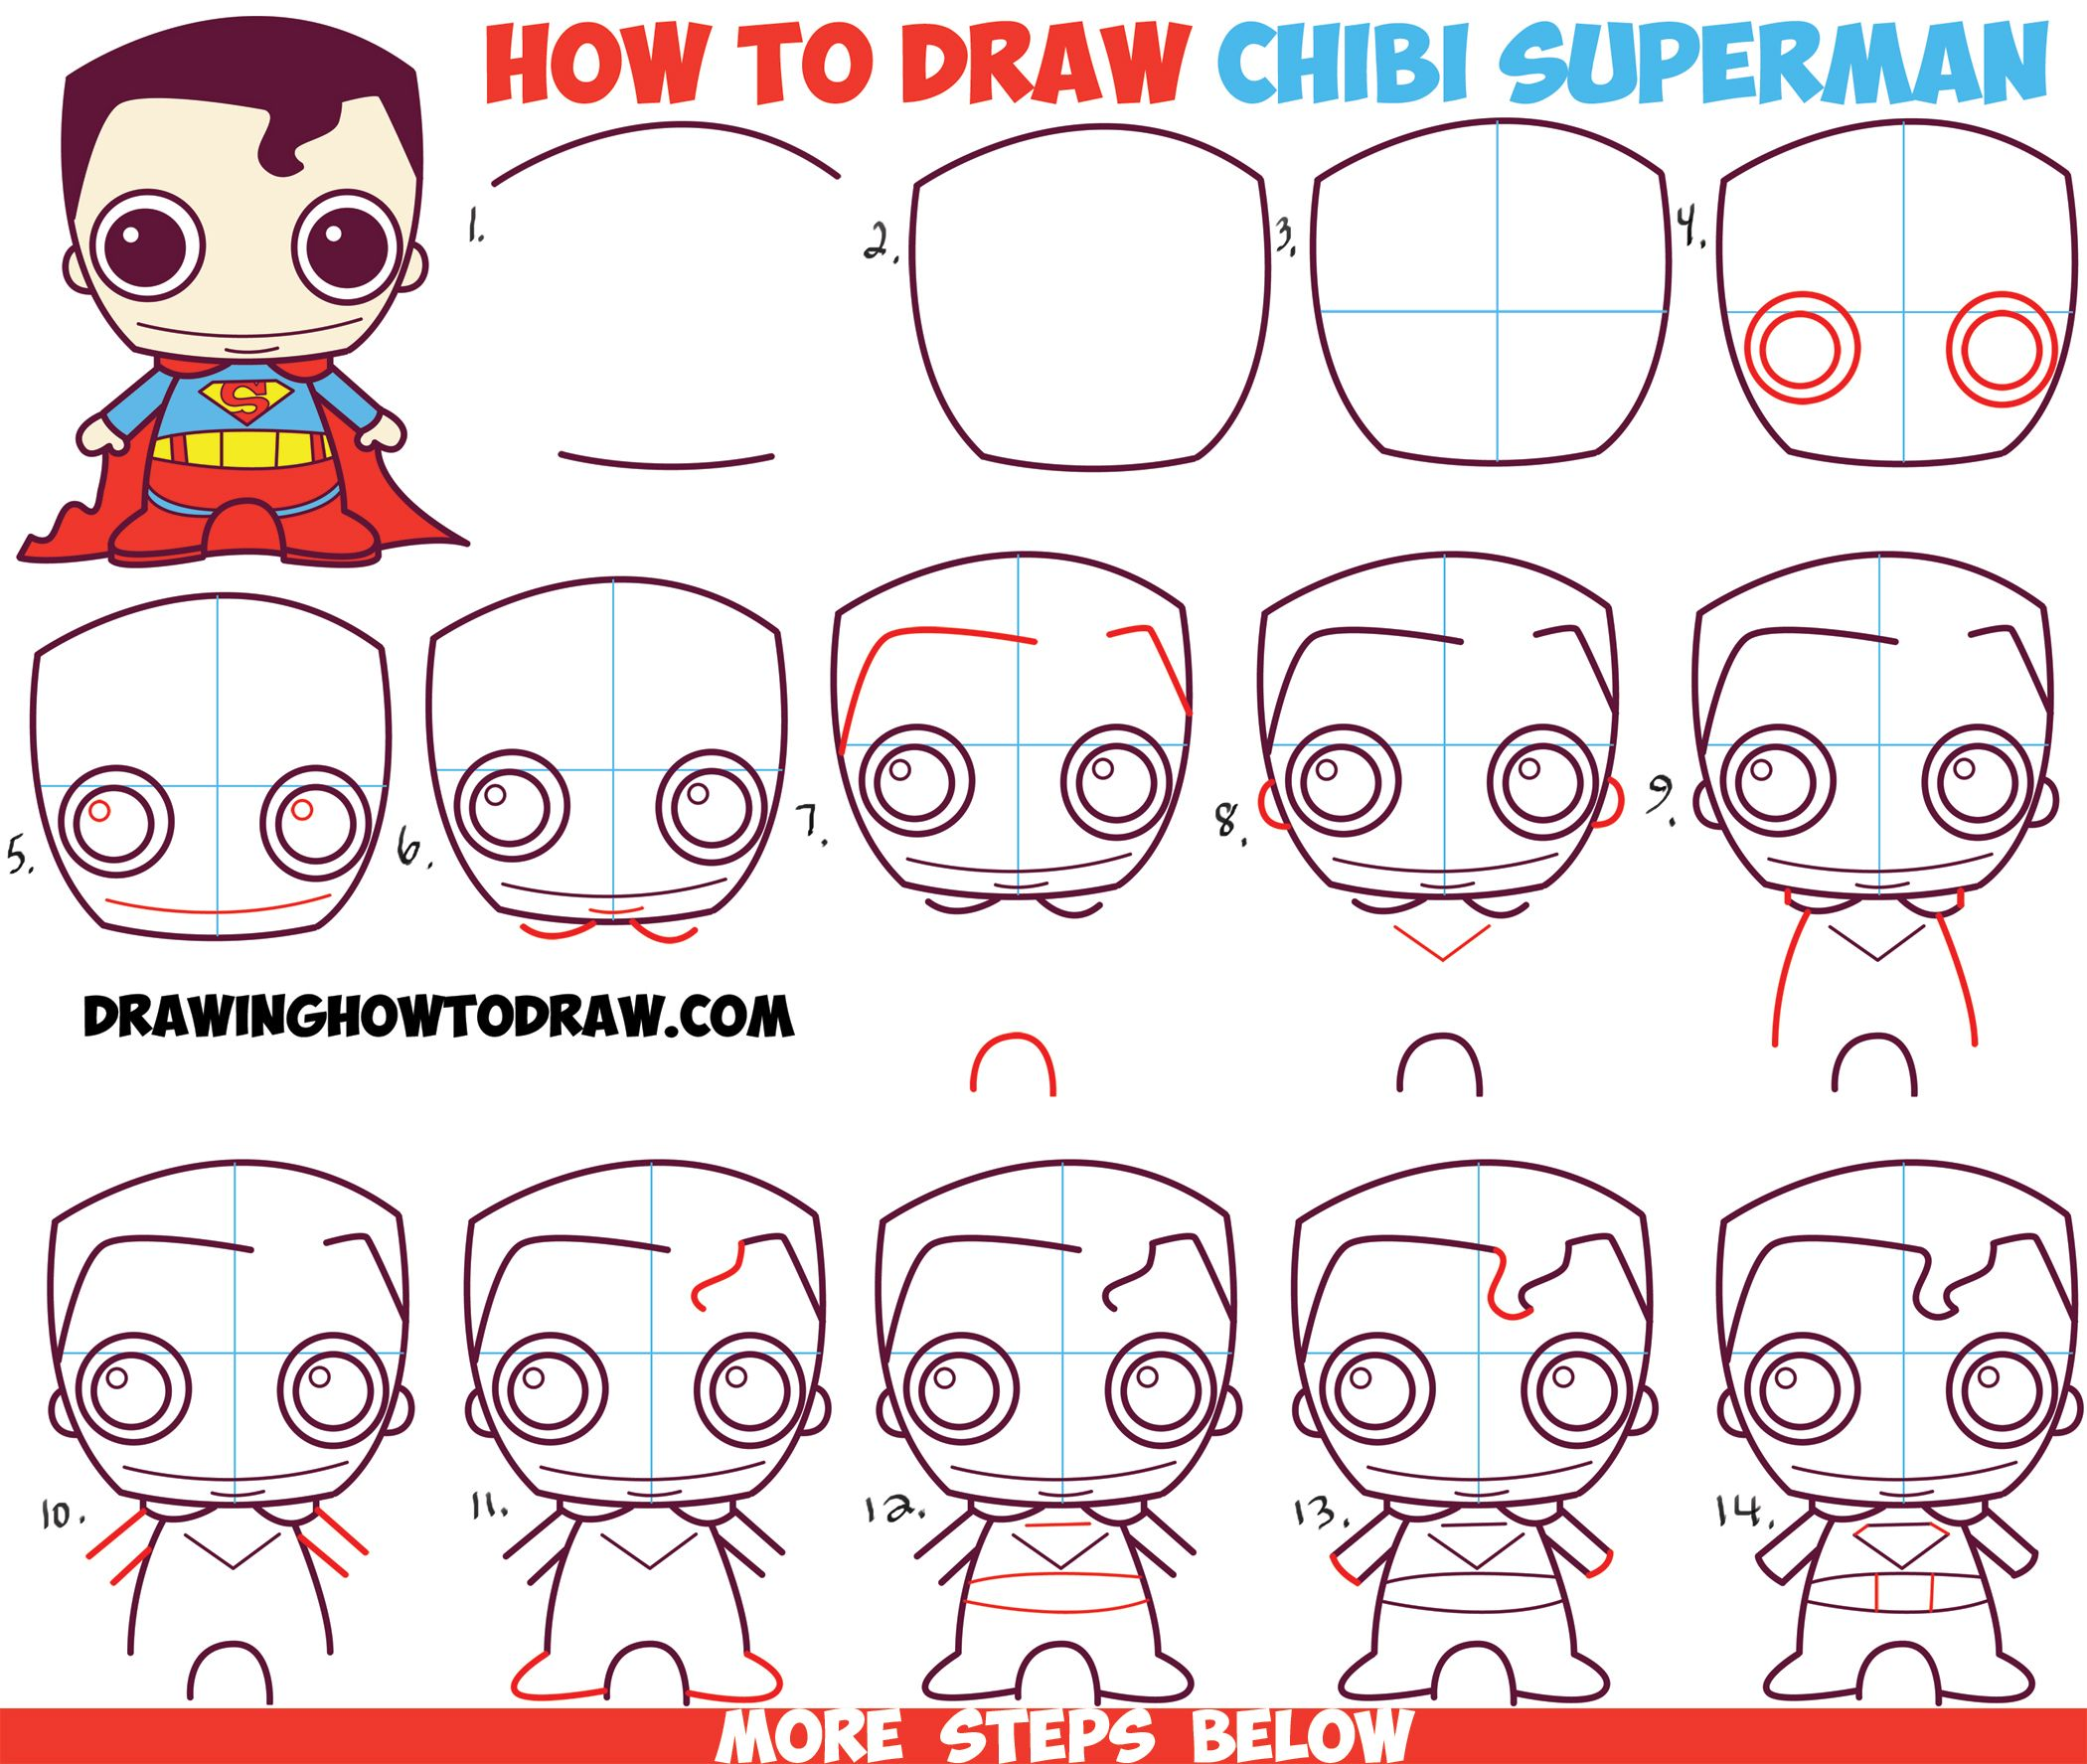 2100x1775 How To Draw Cute Chibi Superman From Dc Comics In Easy Step By